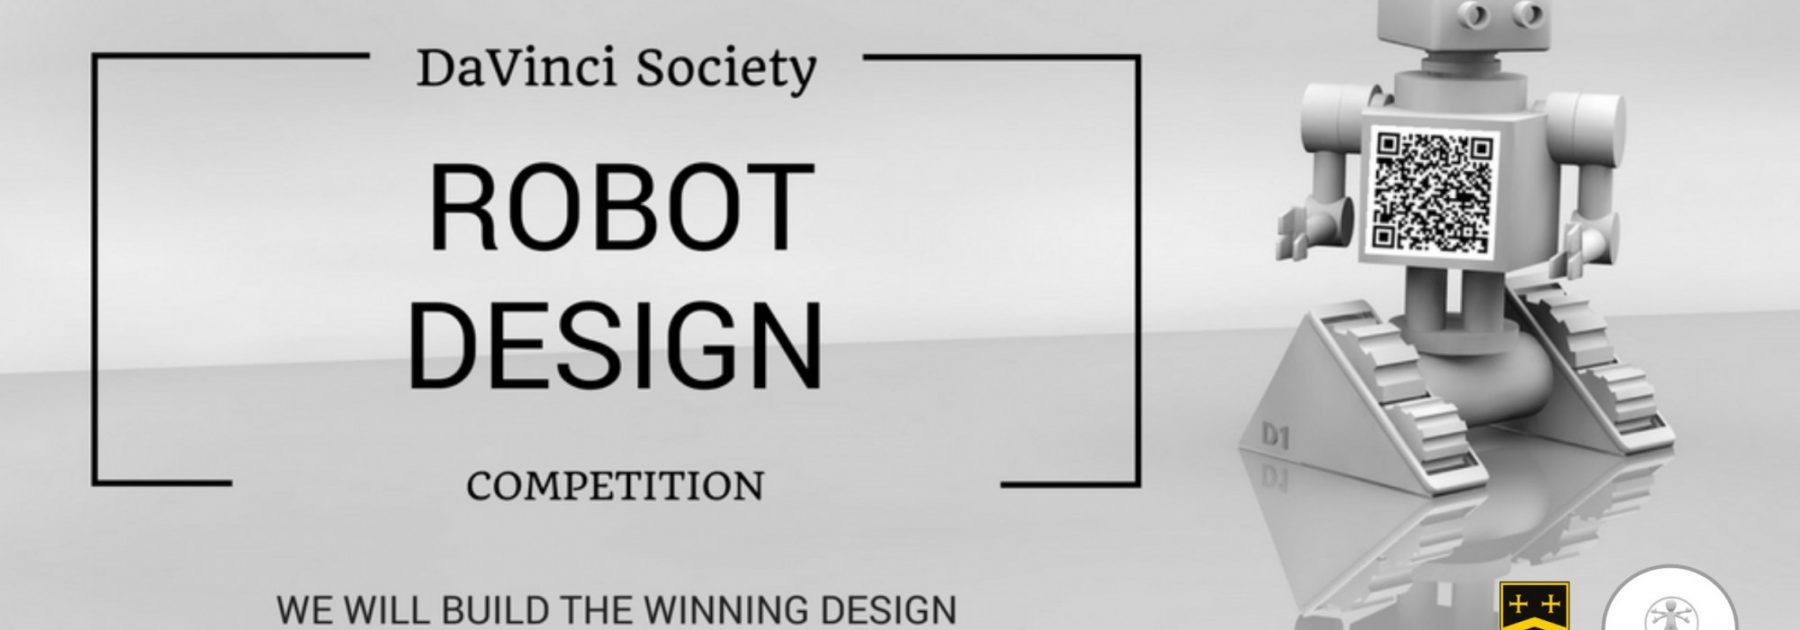 Da Vinci Society Robot Competition